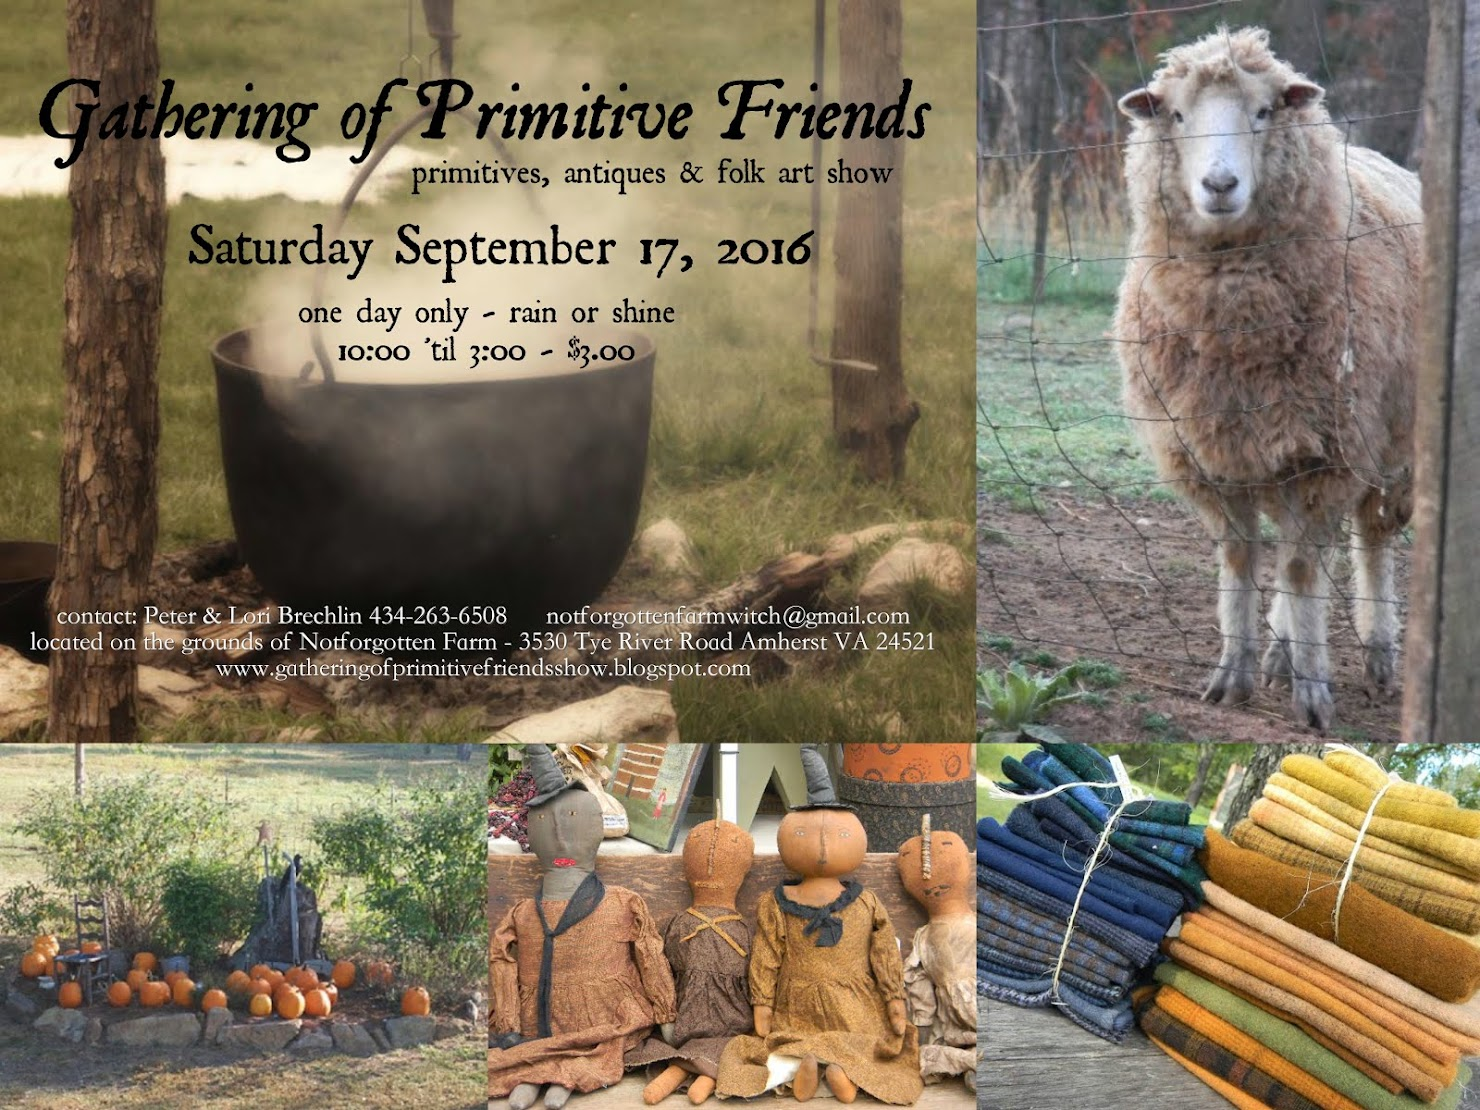 the Gathering of Primitive Friends Show at Notforgotten Farm